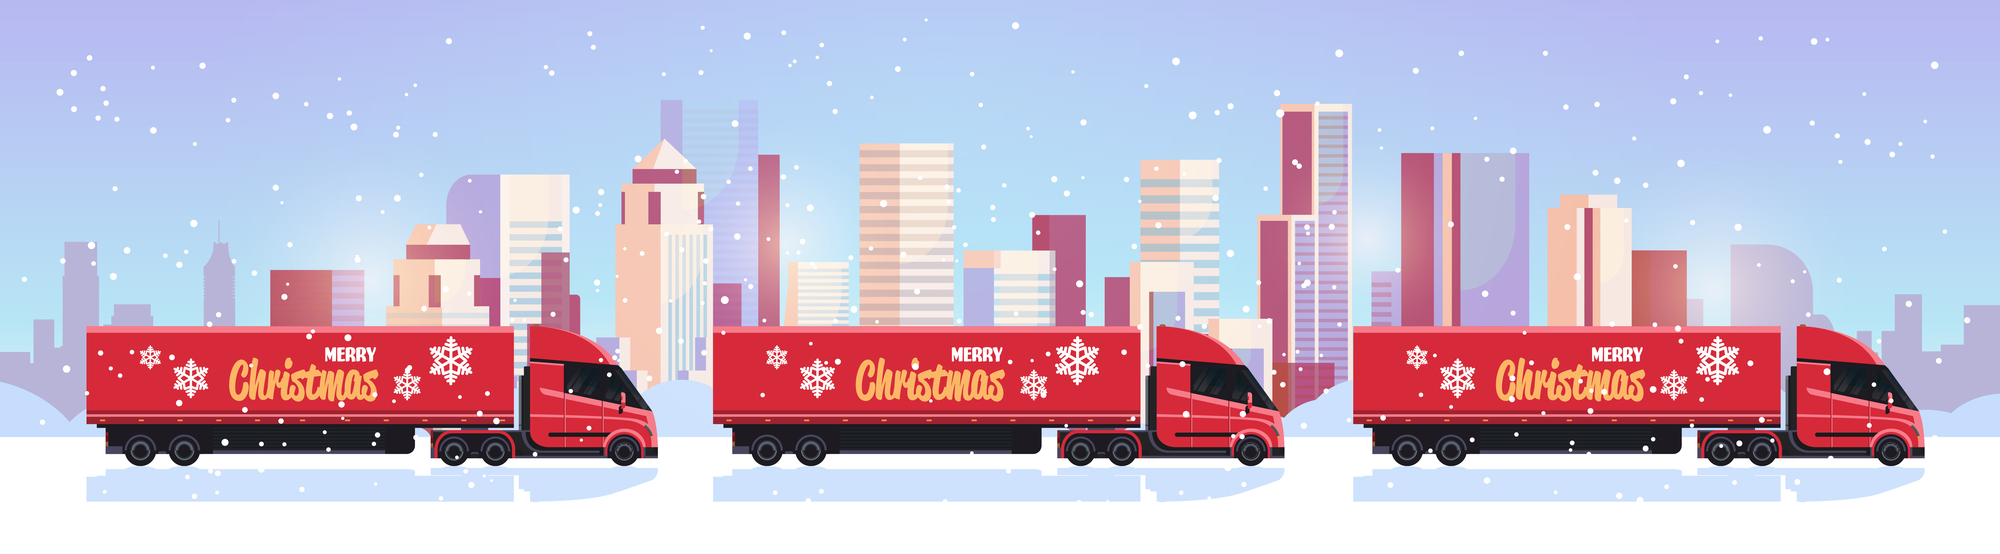 Christmas trucks vector